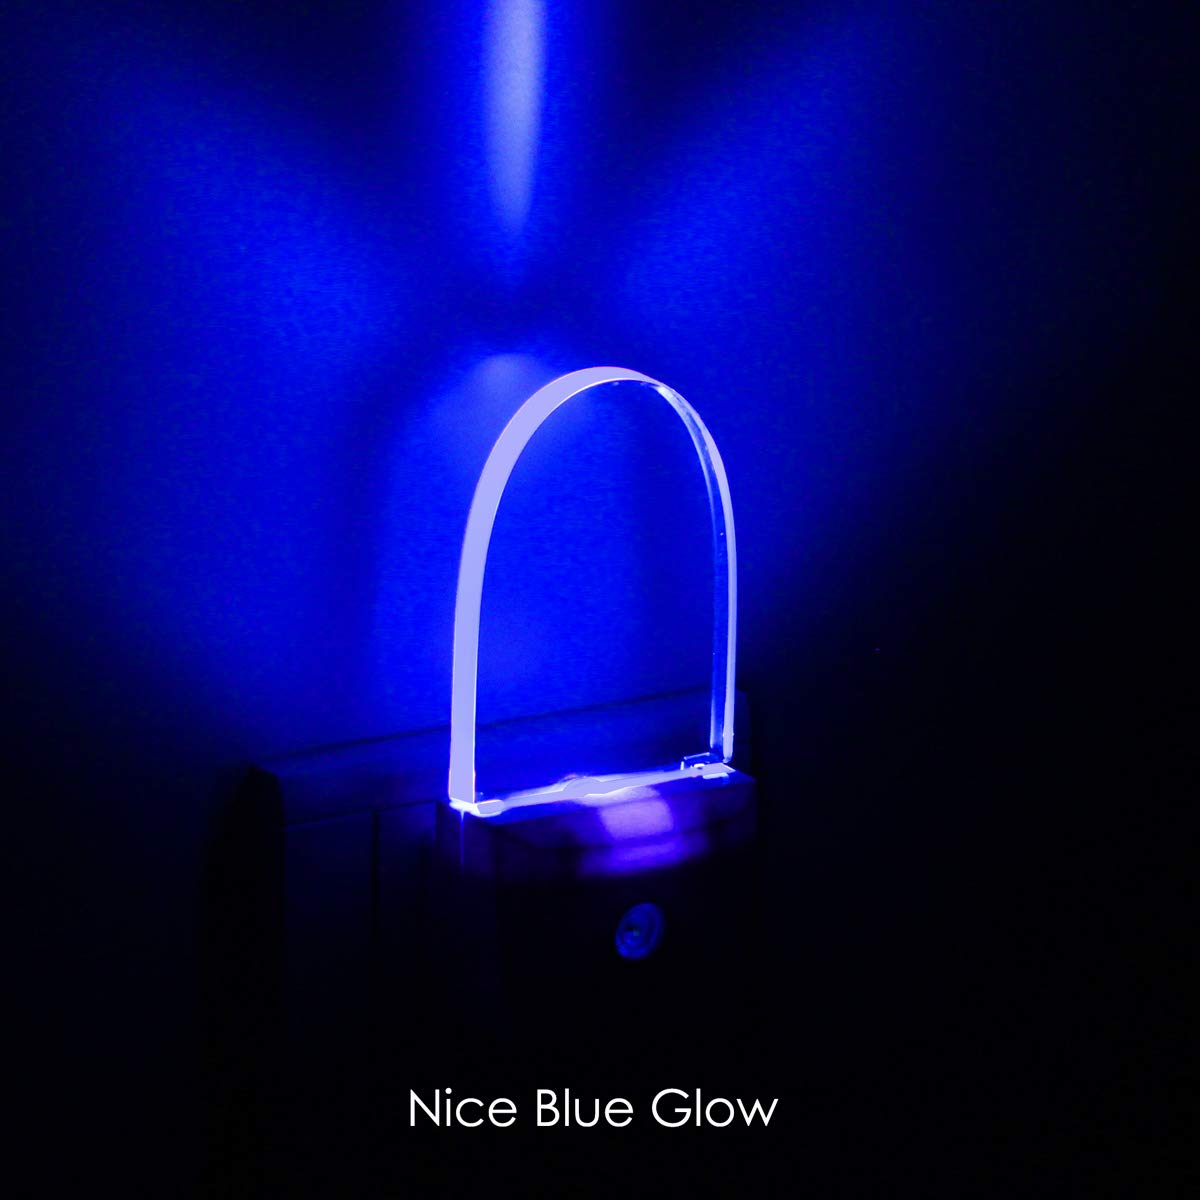 [ Nice Blue Glow ] Plug In LED Night Light with Dusk to Dawn Sensor, Auto ON/OFF, Pack of 2 iAVO